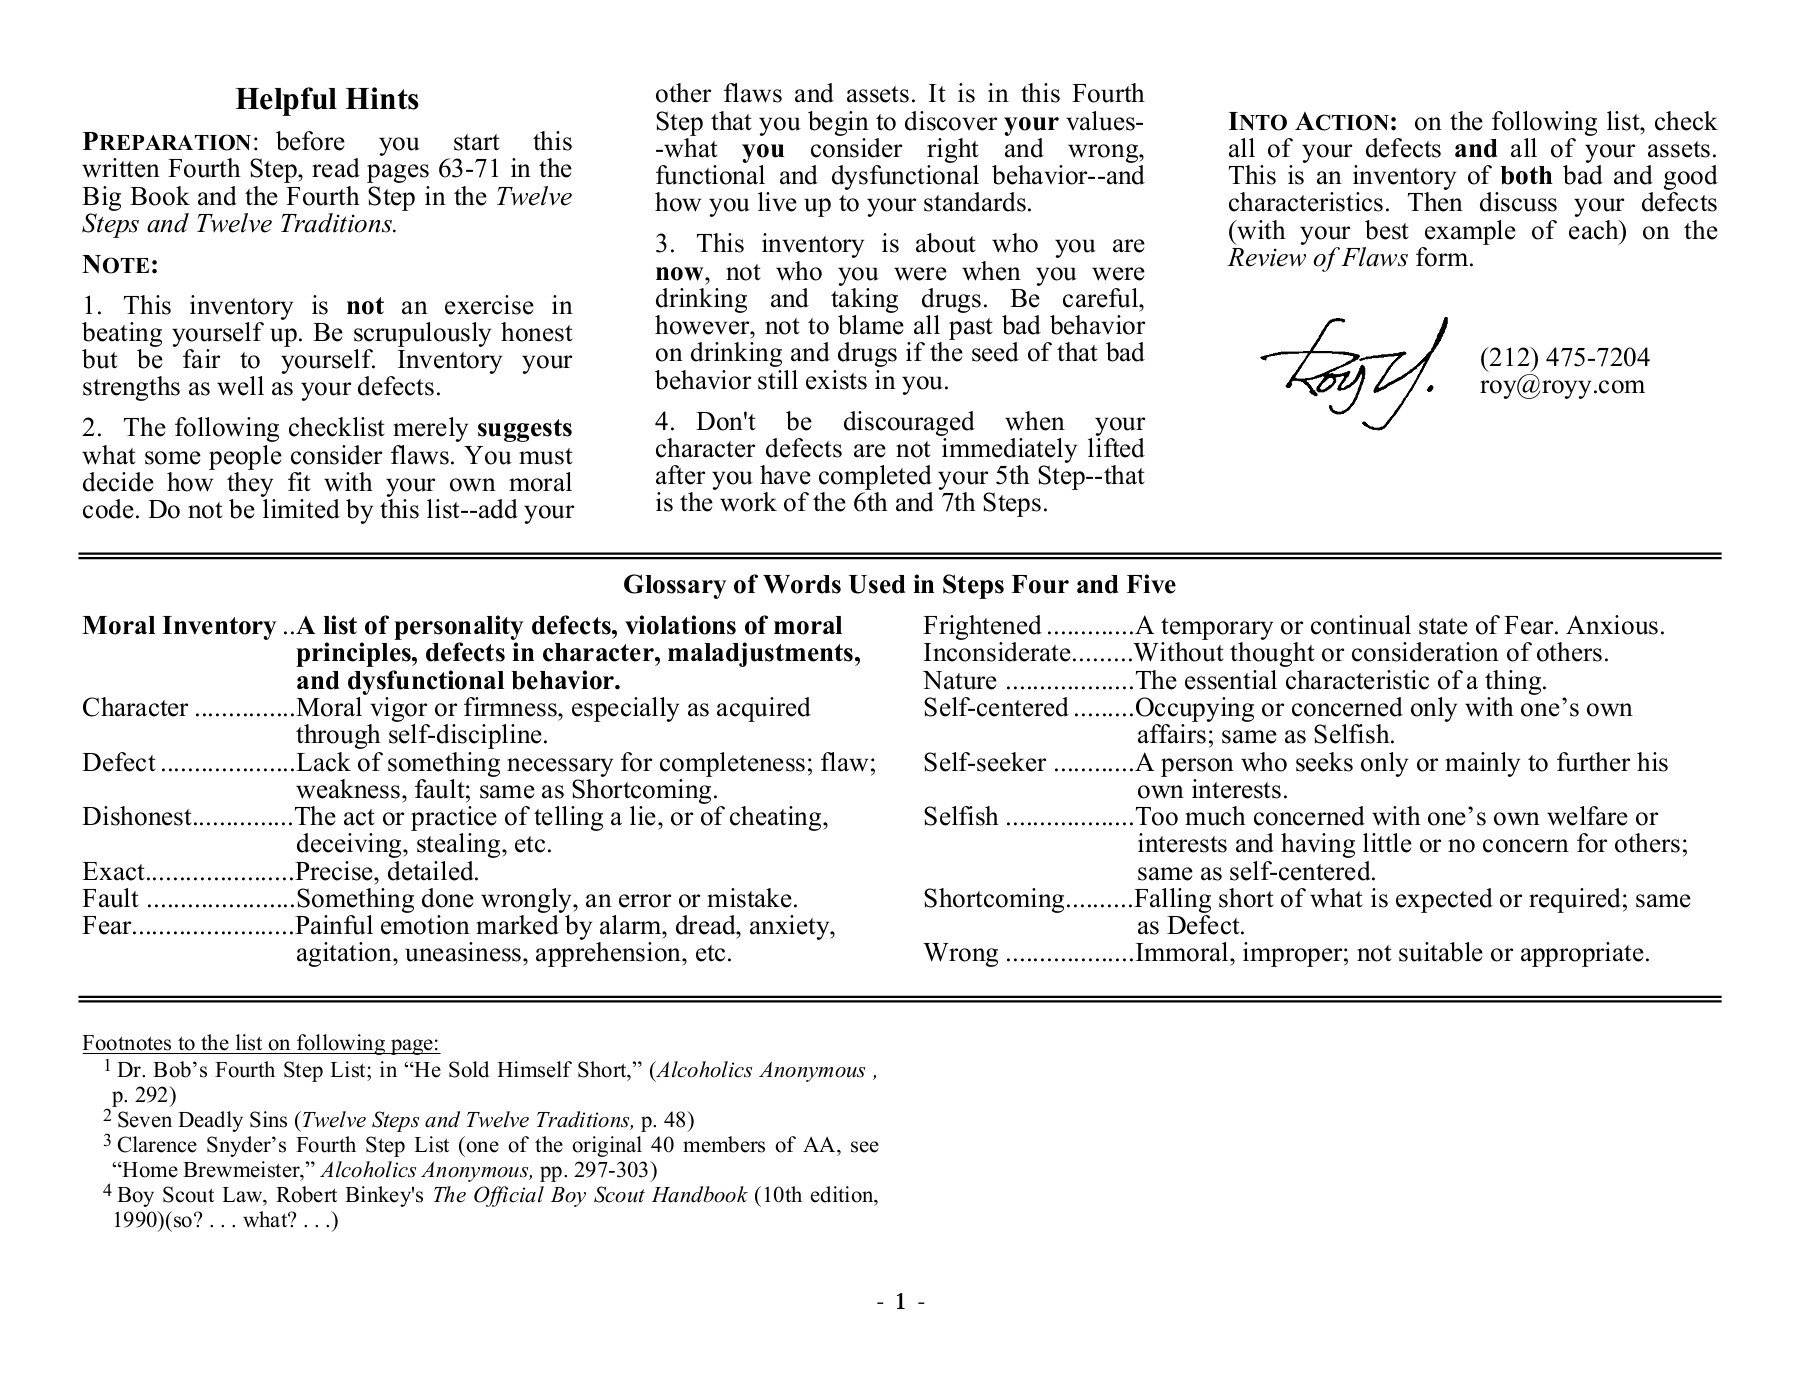 Fourth Step Invento Ry  12  Steps  Recovery Pages 1  15  Text Or Step 2 Aa Worksheet